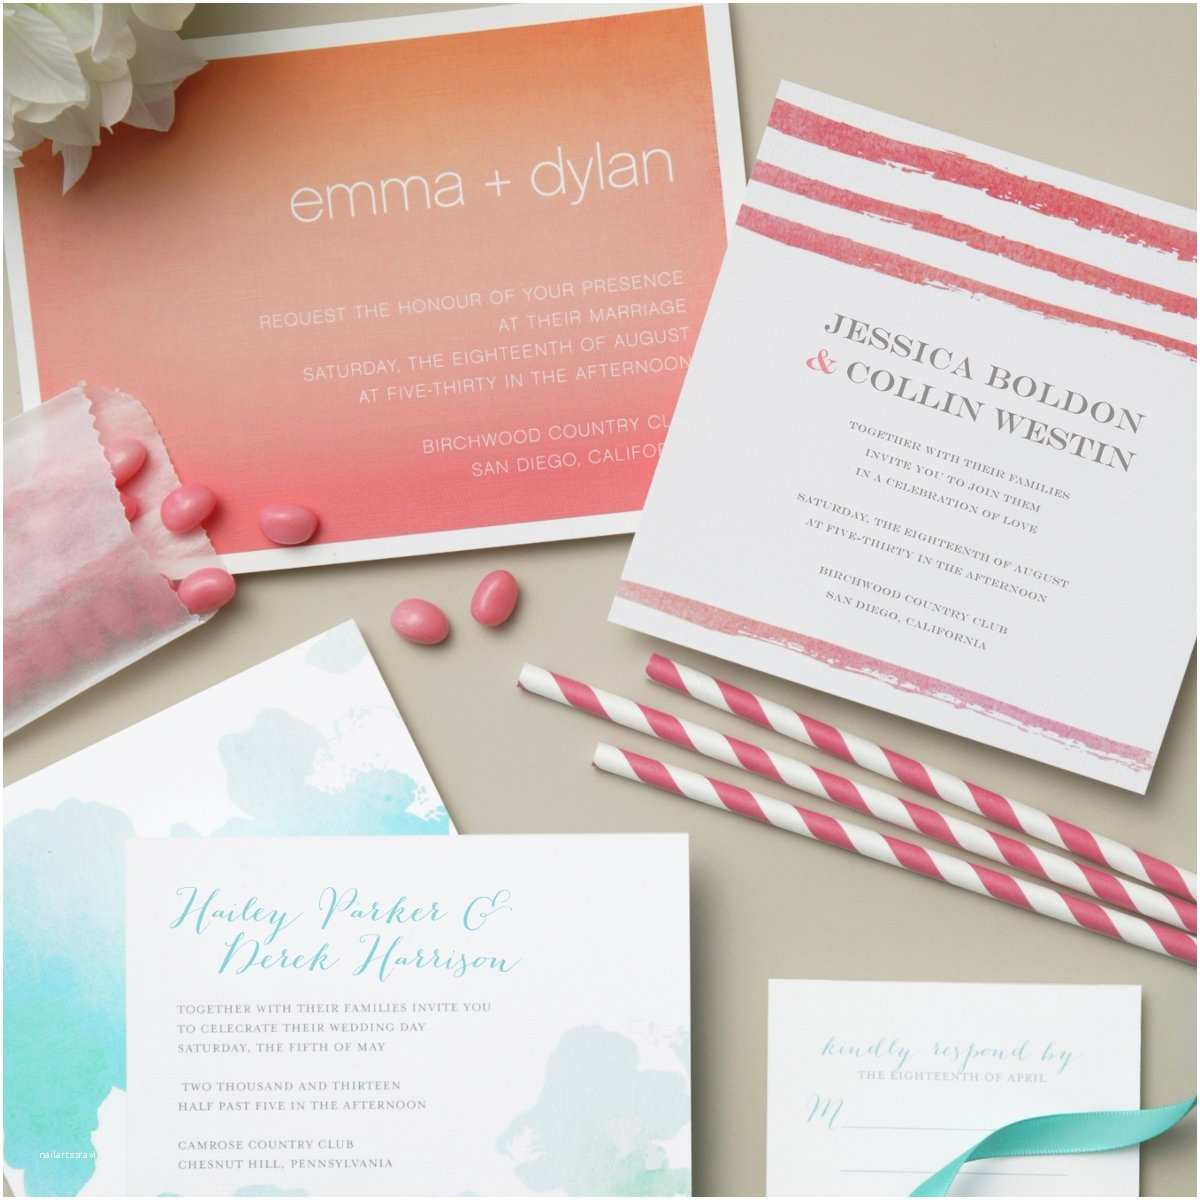 Wedding Invitations Stillwater Mn Gartner Studios Invitations Stillwater Mn Weddingwire